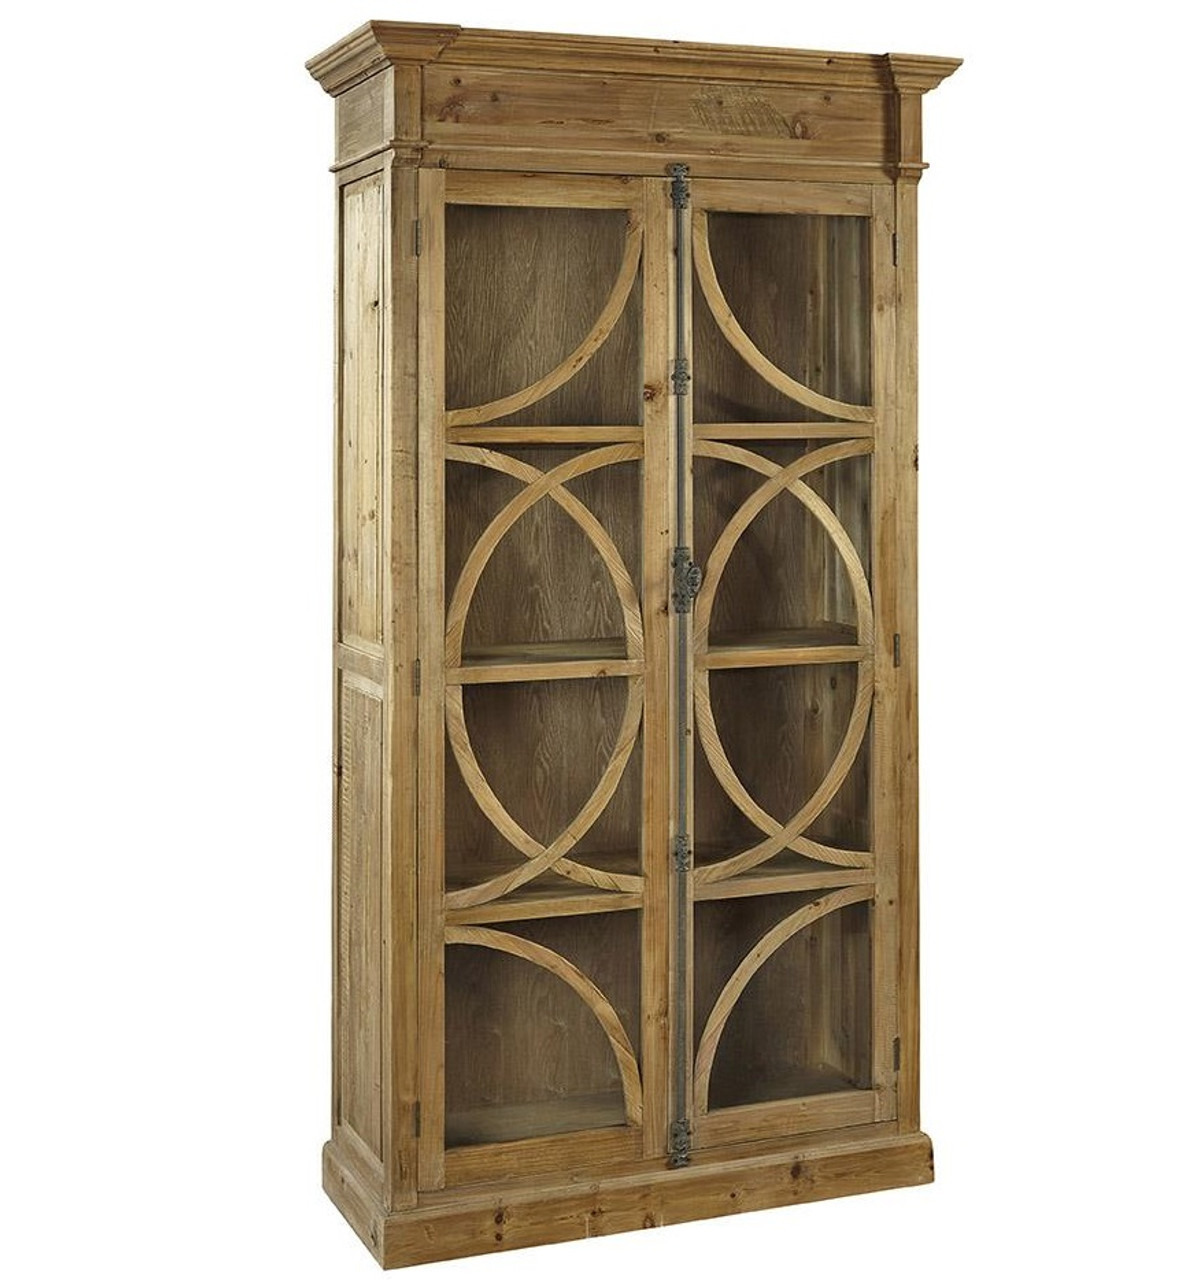 French country china cabinets - Kaleidoscope French Country Weathered Wood Display Cabinet